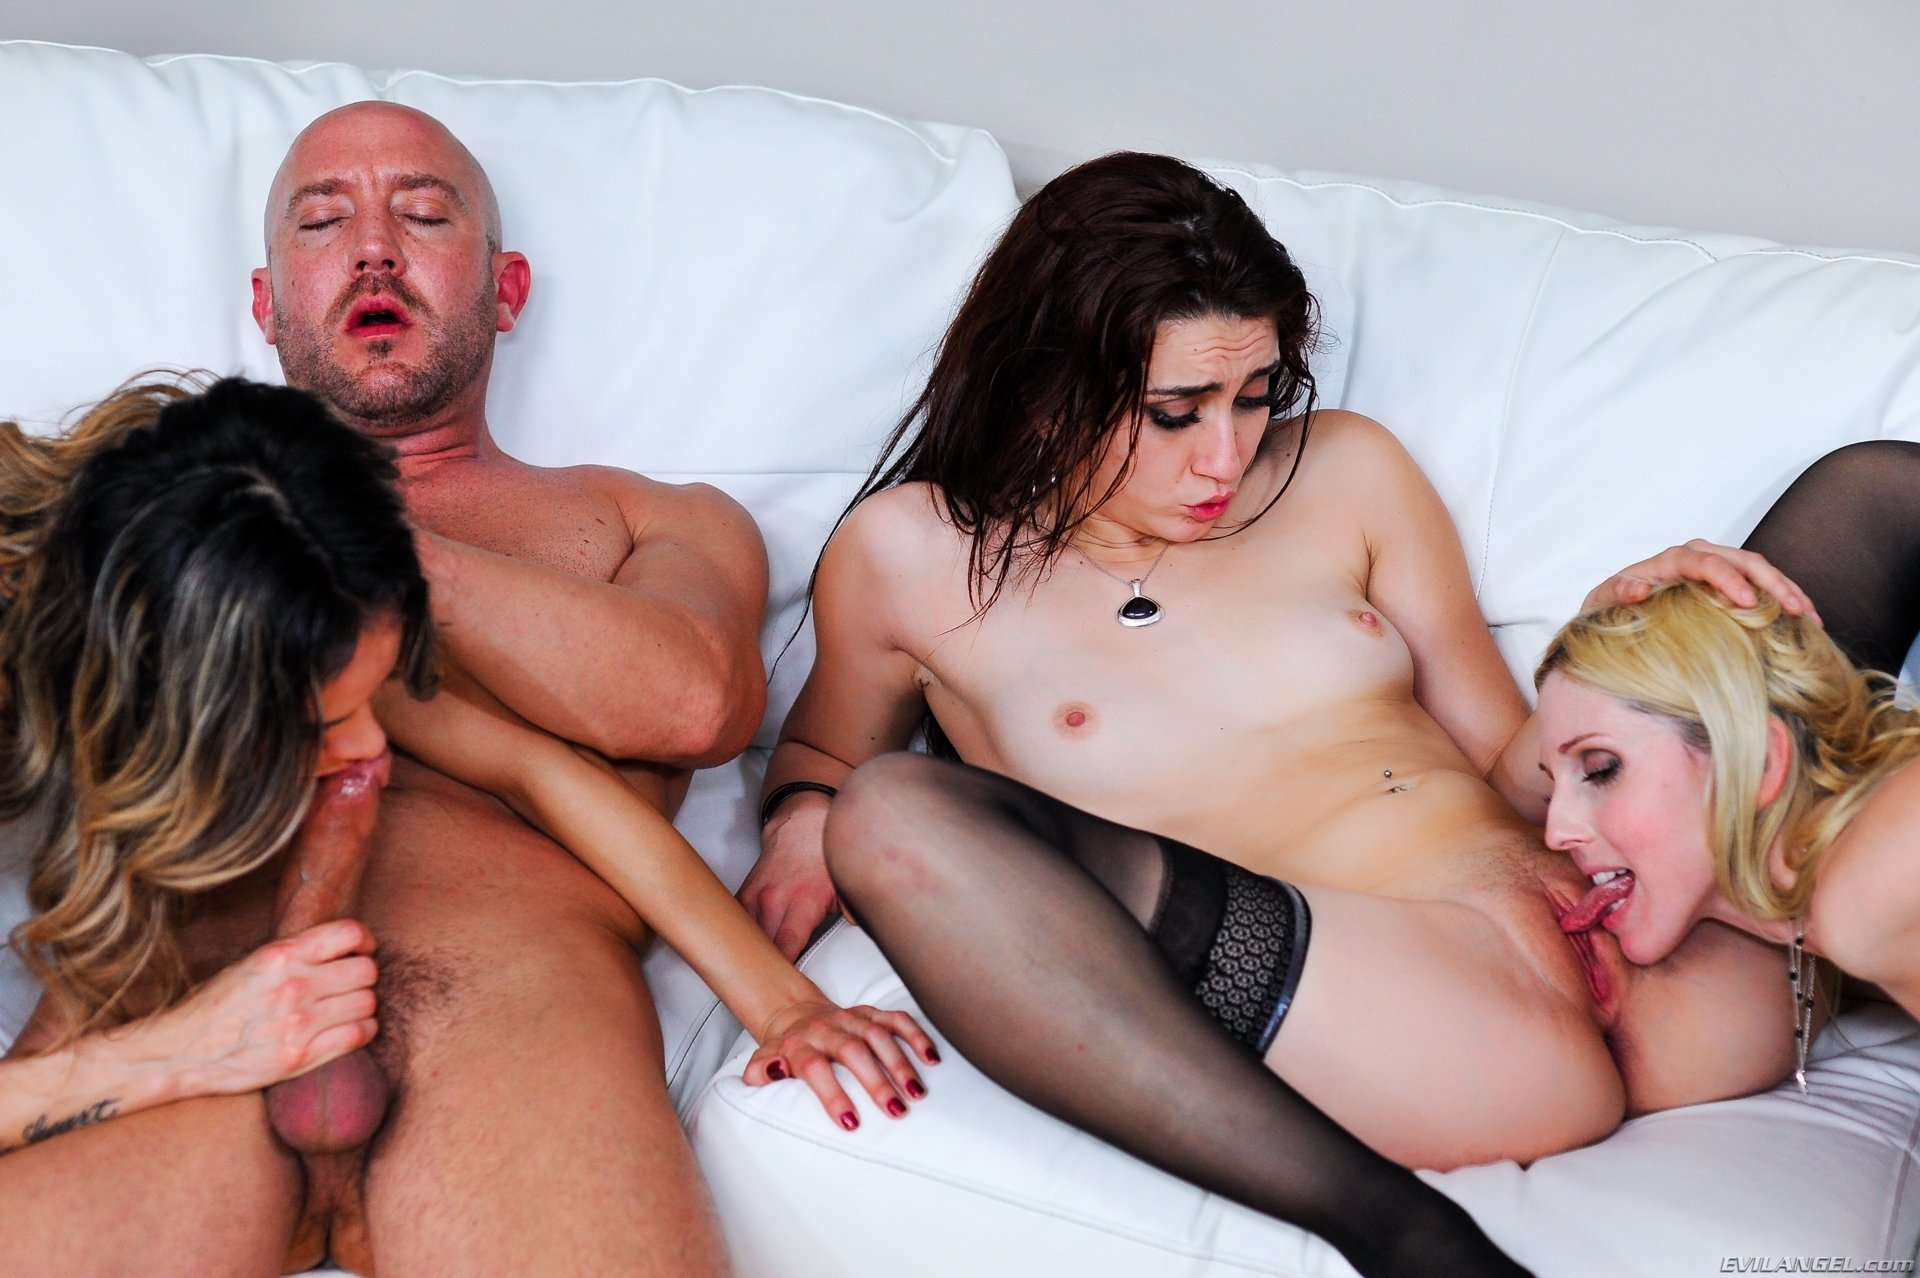 Video sex party porn #1